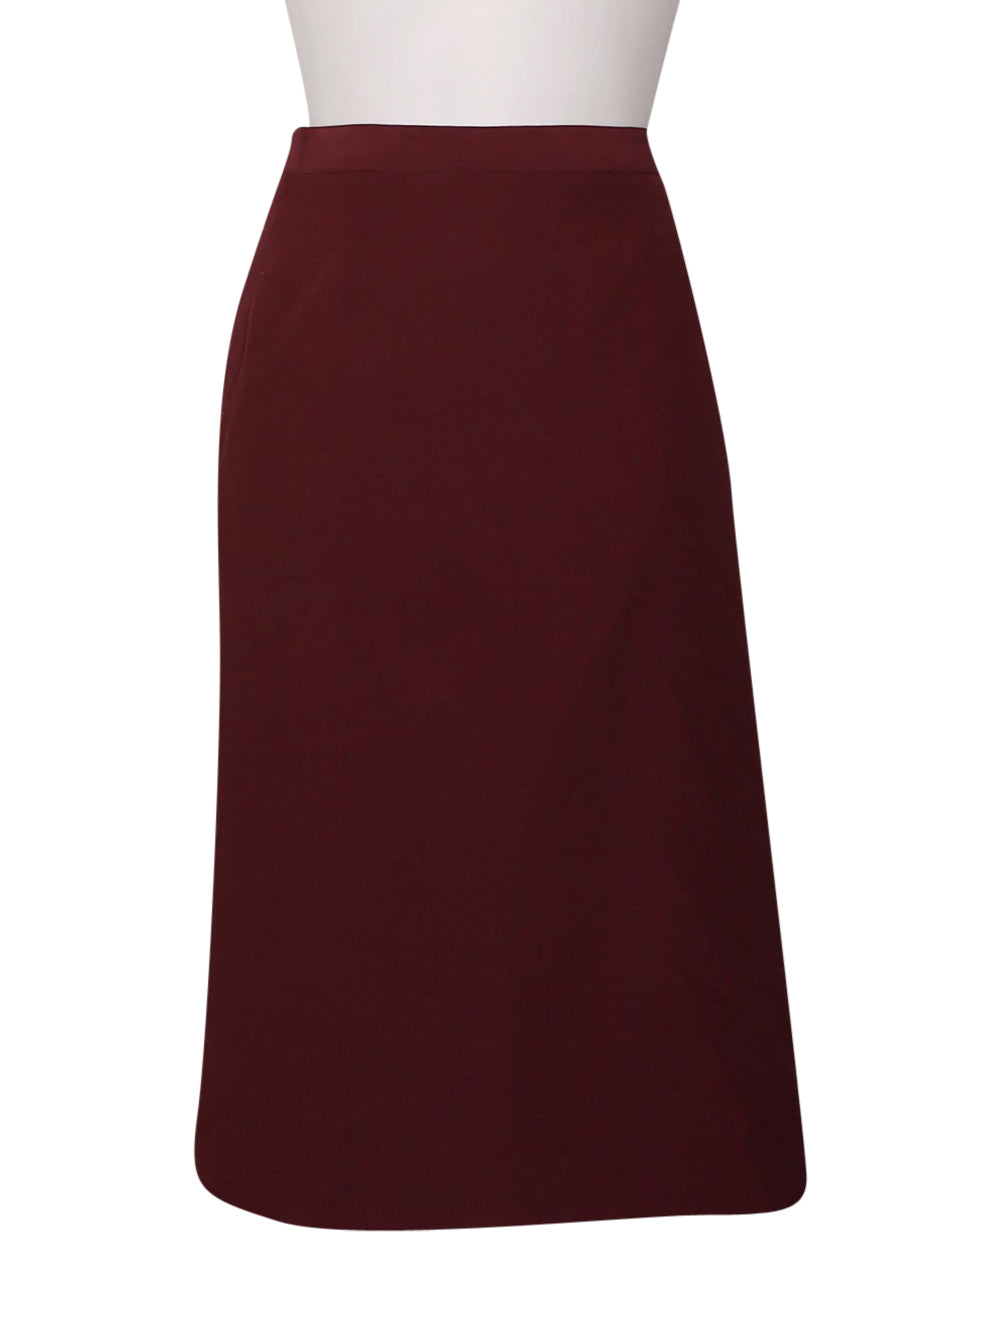 Front photo of Preloved Hennè Bordeaux Woman's skirt - size 10/M